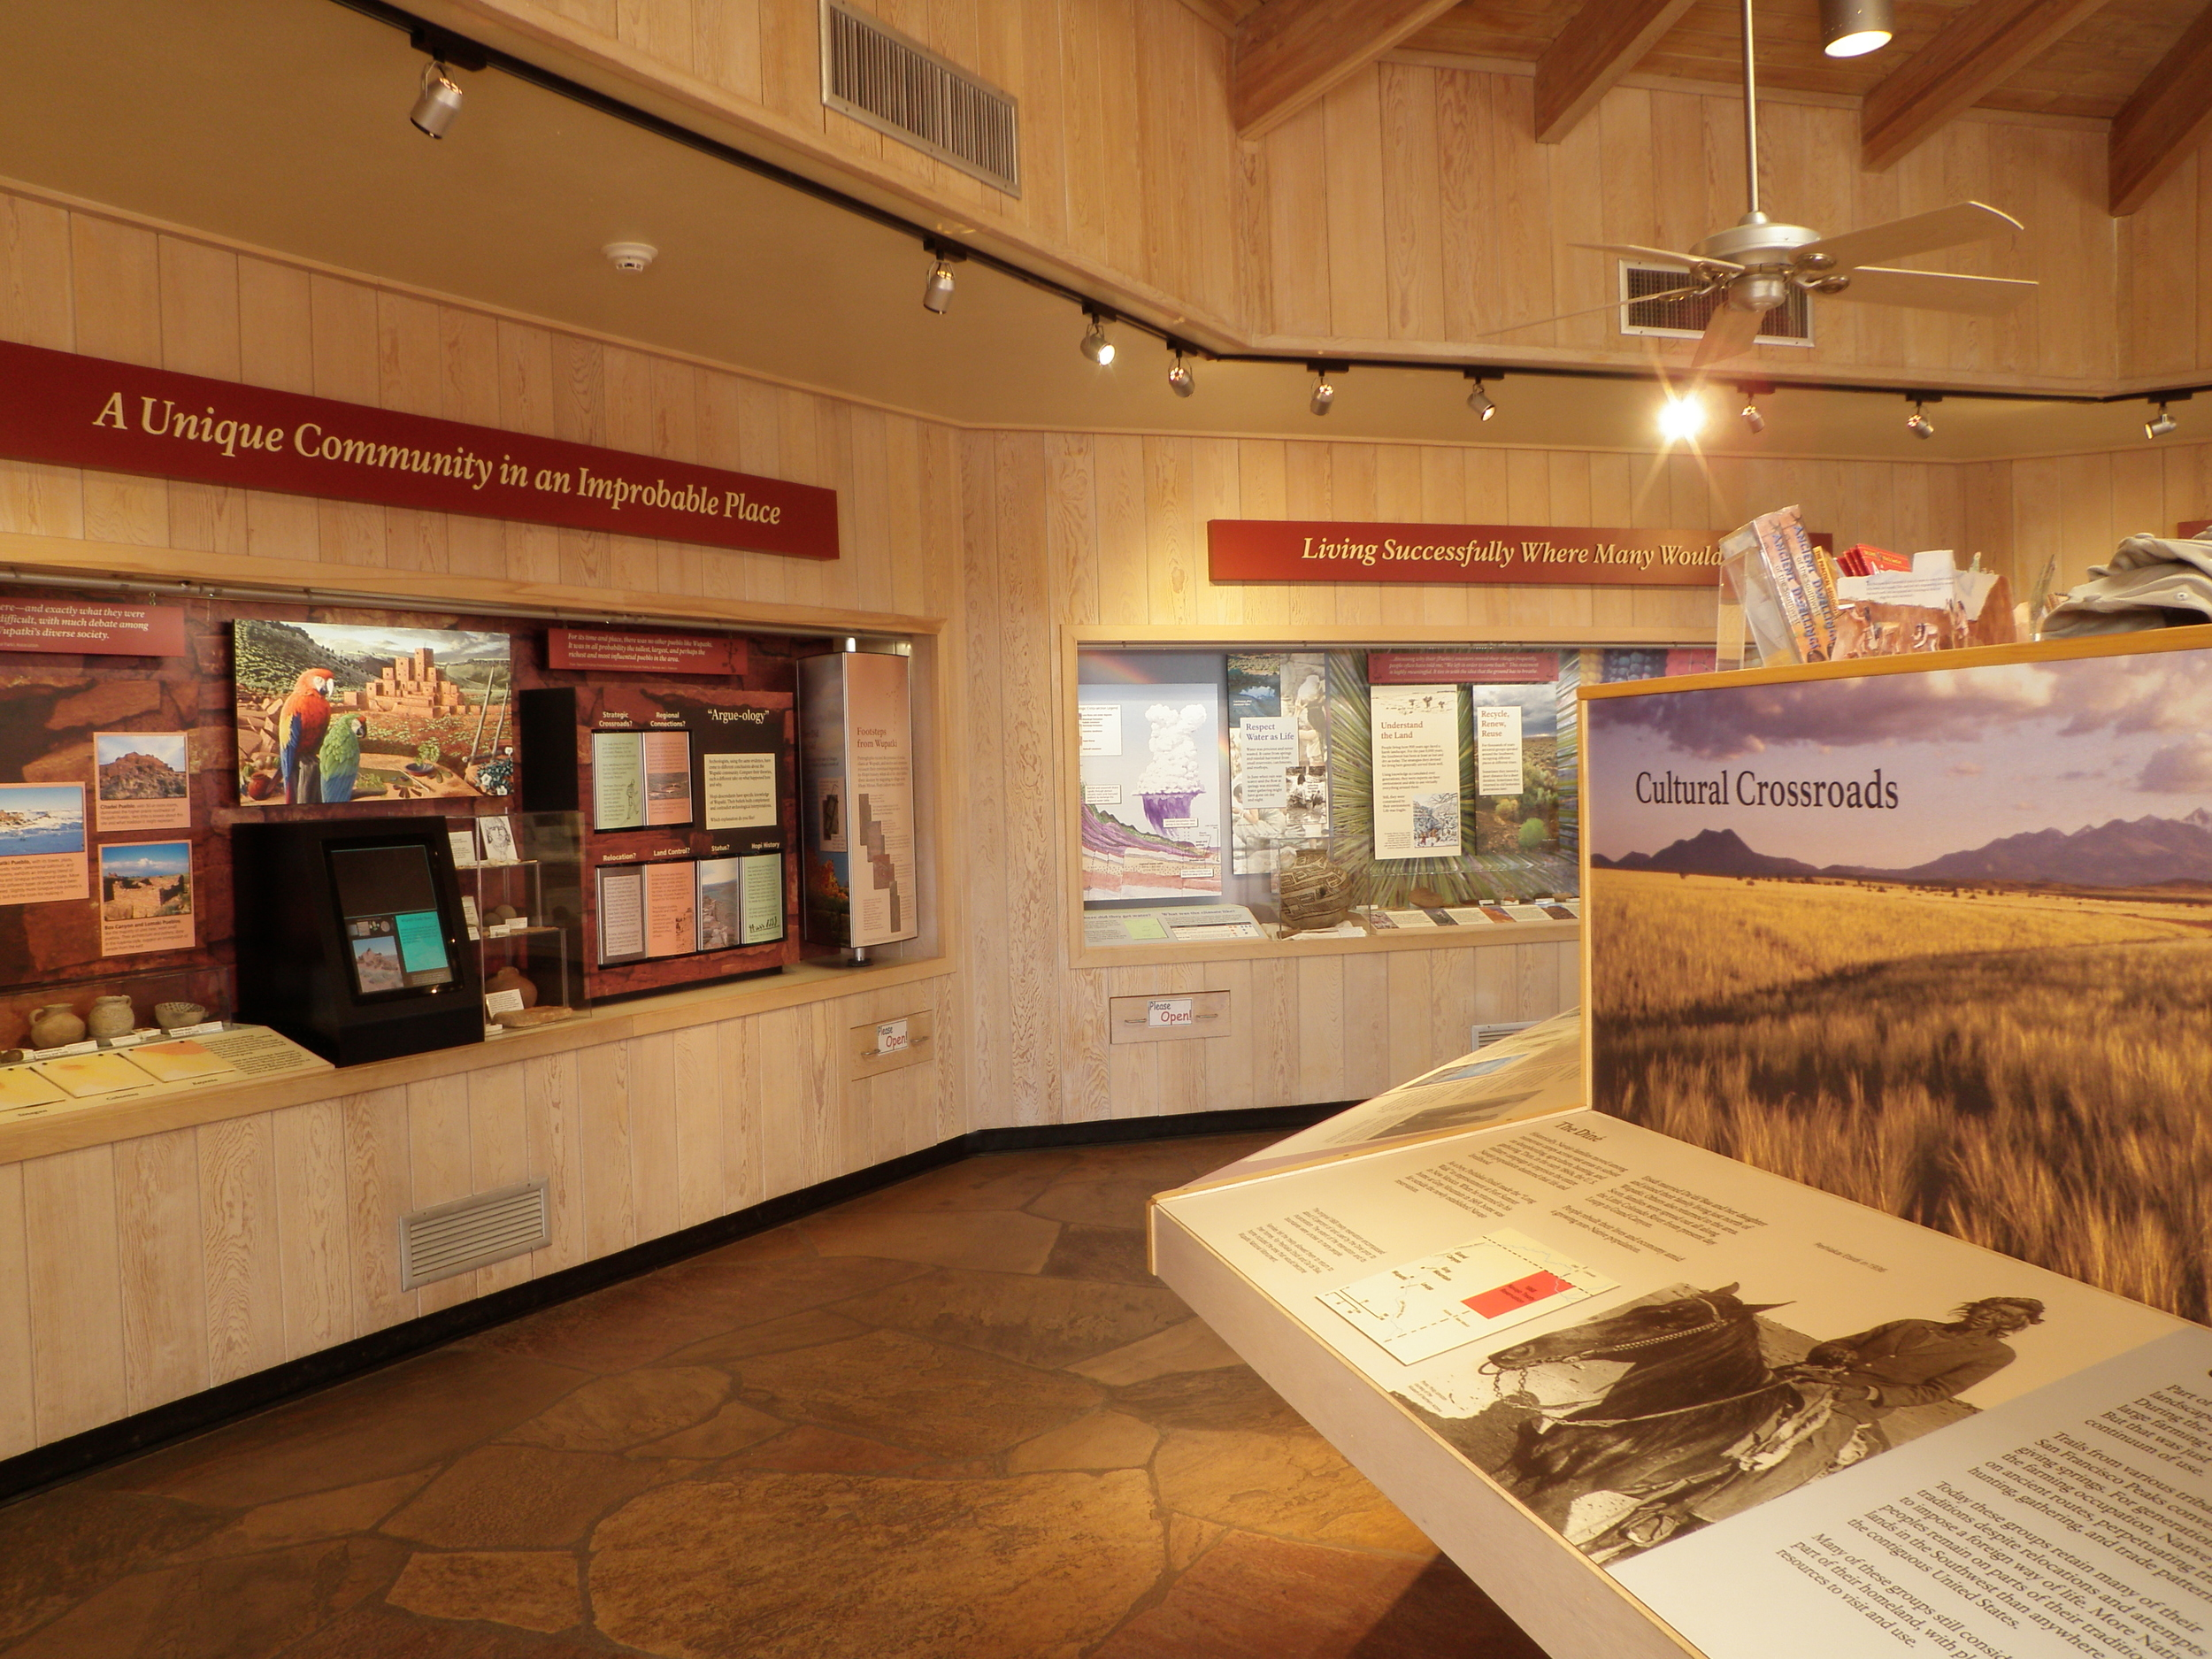 The Visitor Center at Wupatki National Monument